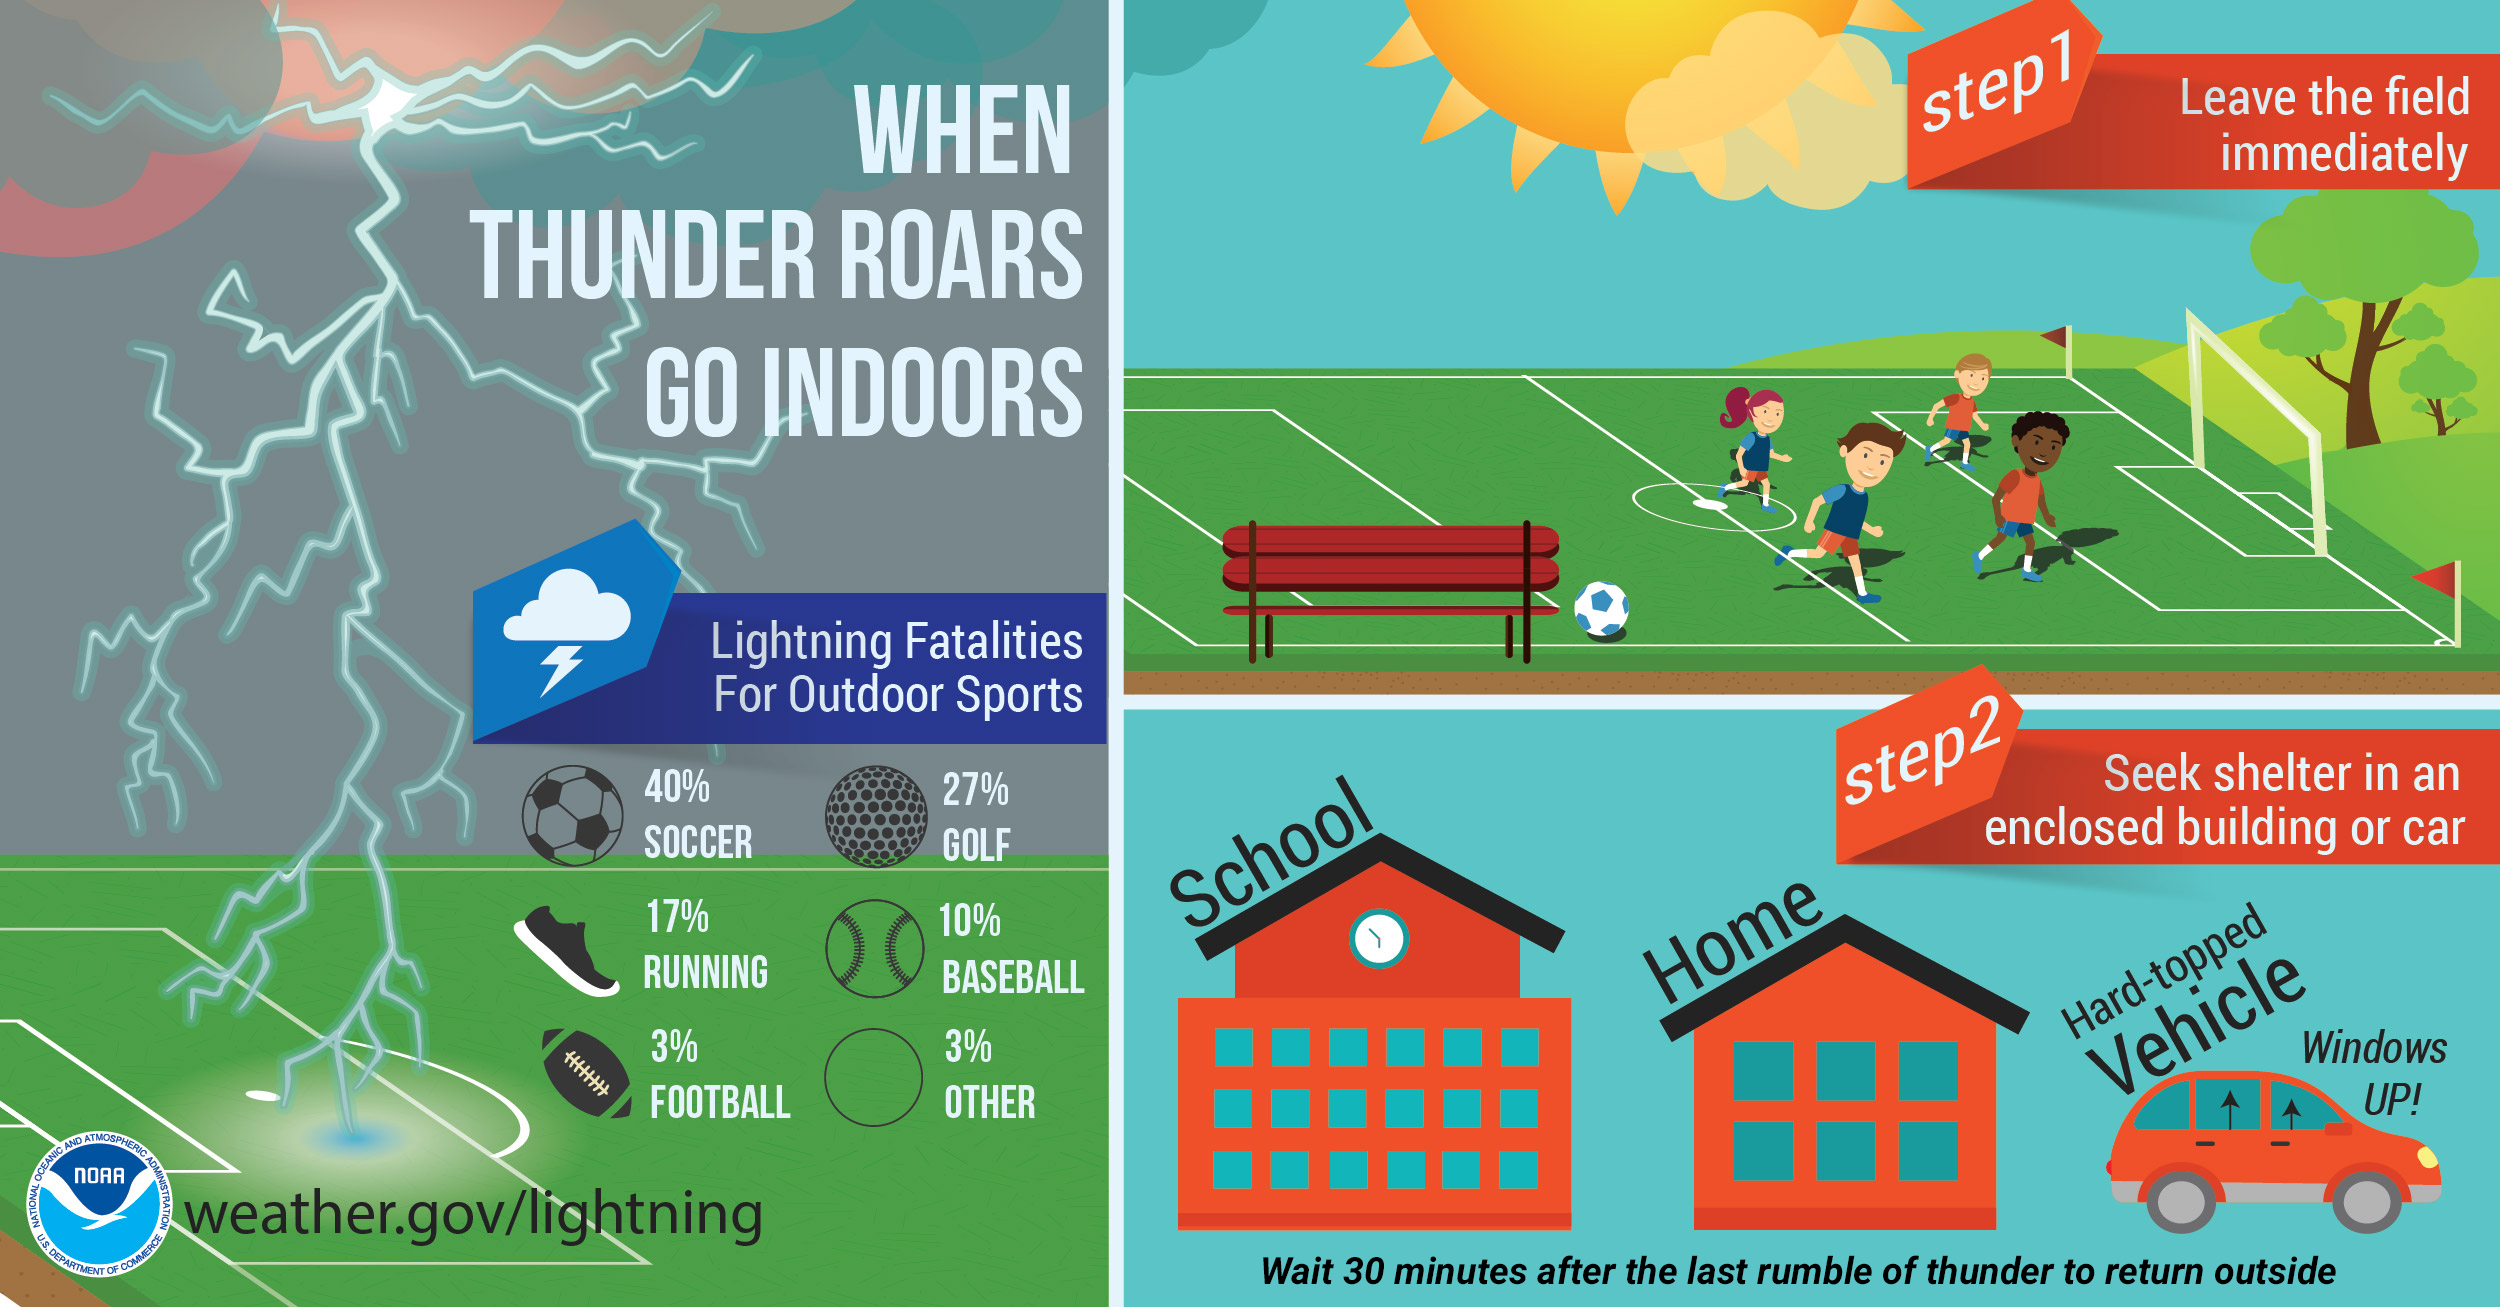 When Thunder Roars Go Indoors!  Lightning Fatalities for Outdoor Sports: Soccer-40% Golf-27% Running-17% Baseball-10% Football-3% Other-3%. Step 1: Leave the field immediately. Step 2: Seek shelter in an enclosed building or car (windows up). Wait 30 minutes after hearing thunder to return outside.